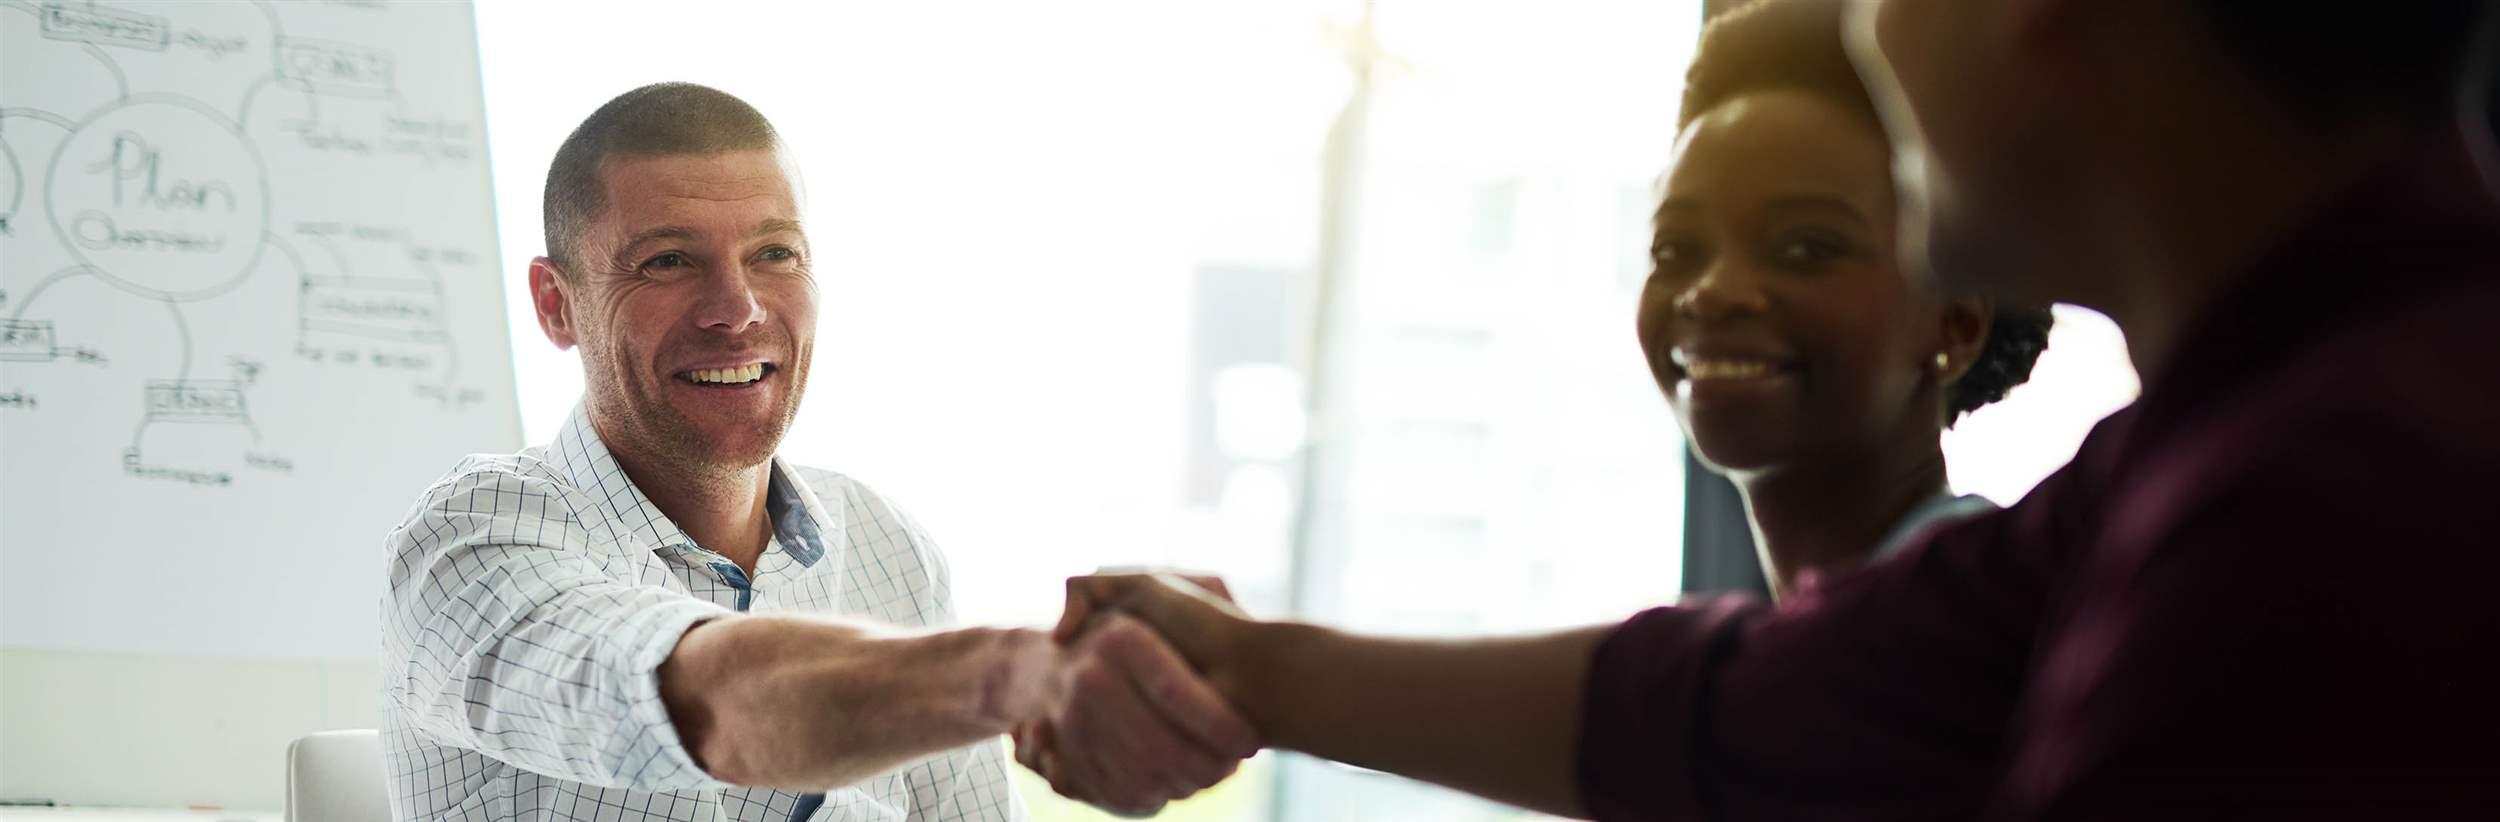 Cropped shot of businesspeople shaking hands during a meeting in an office